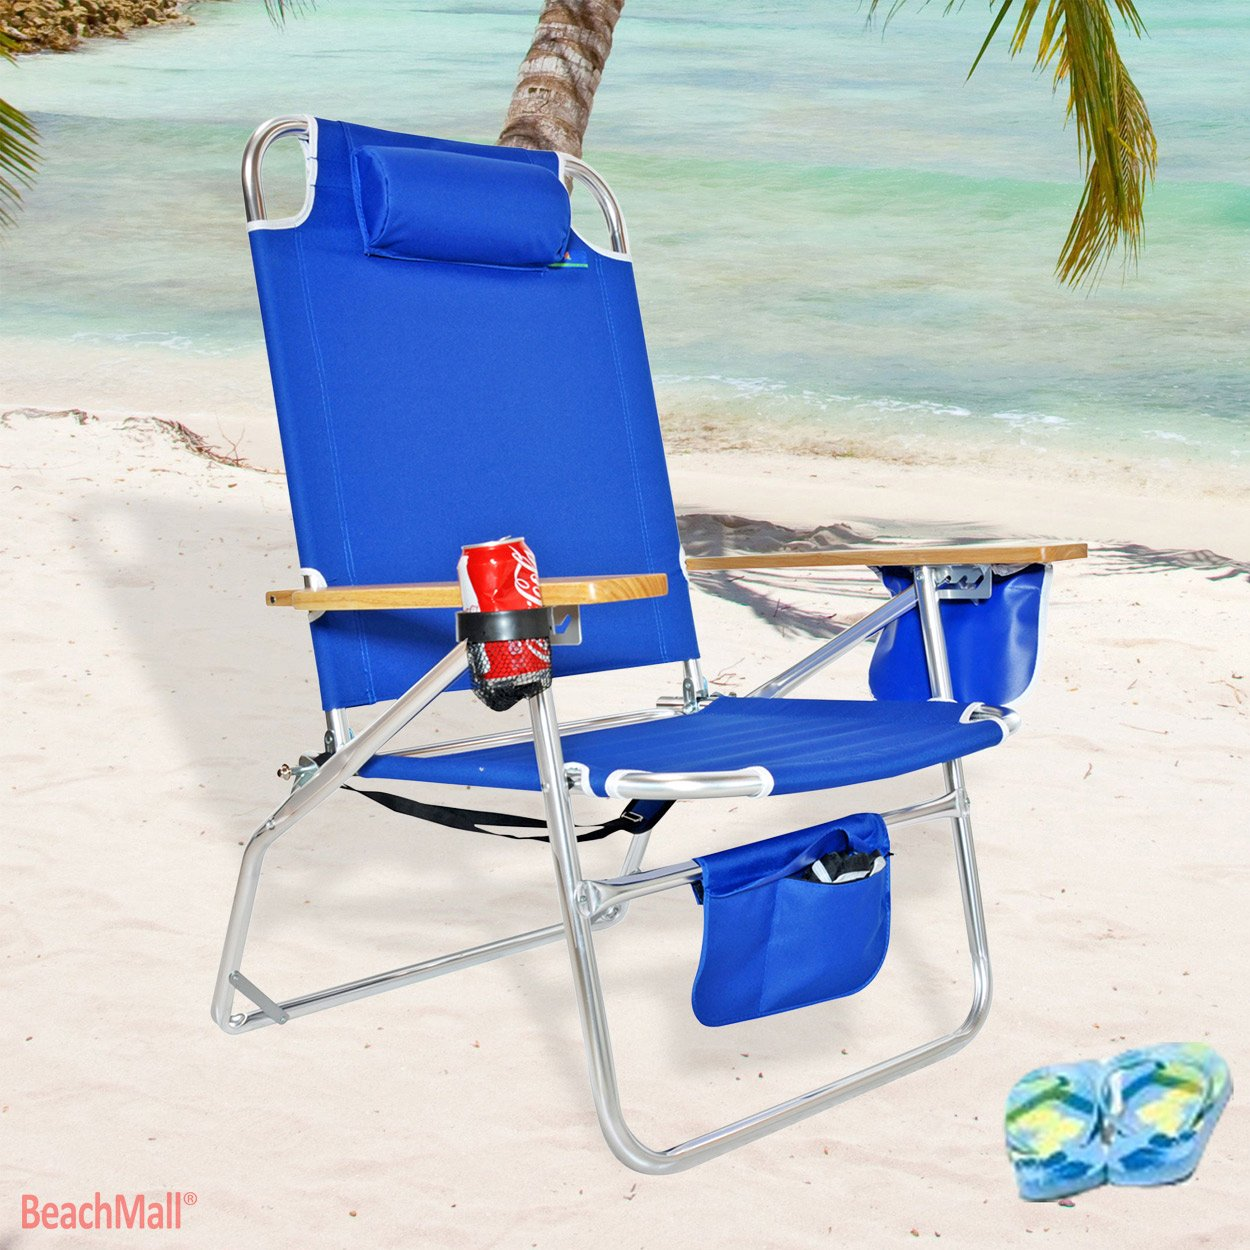 500 lb Beach Chairs For Obese People  For Big And Heavy